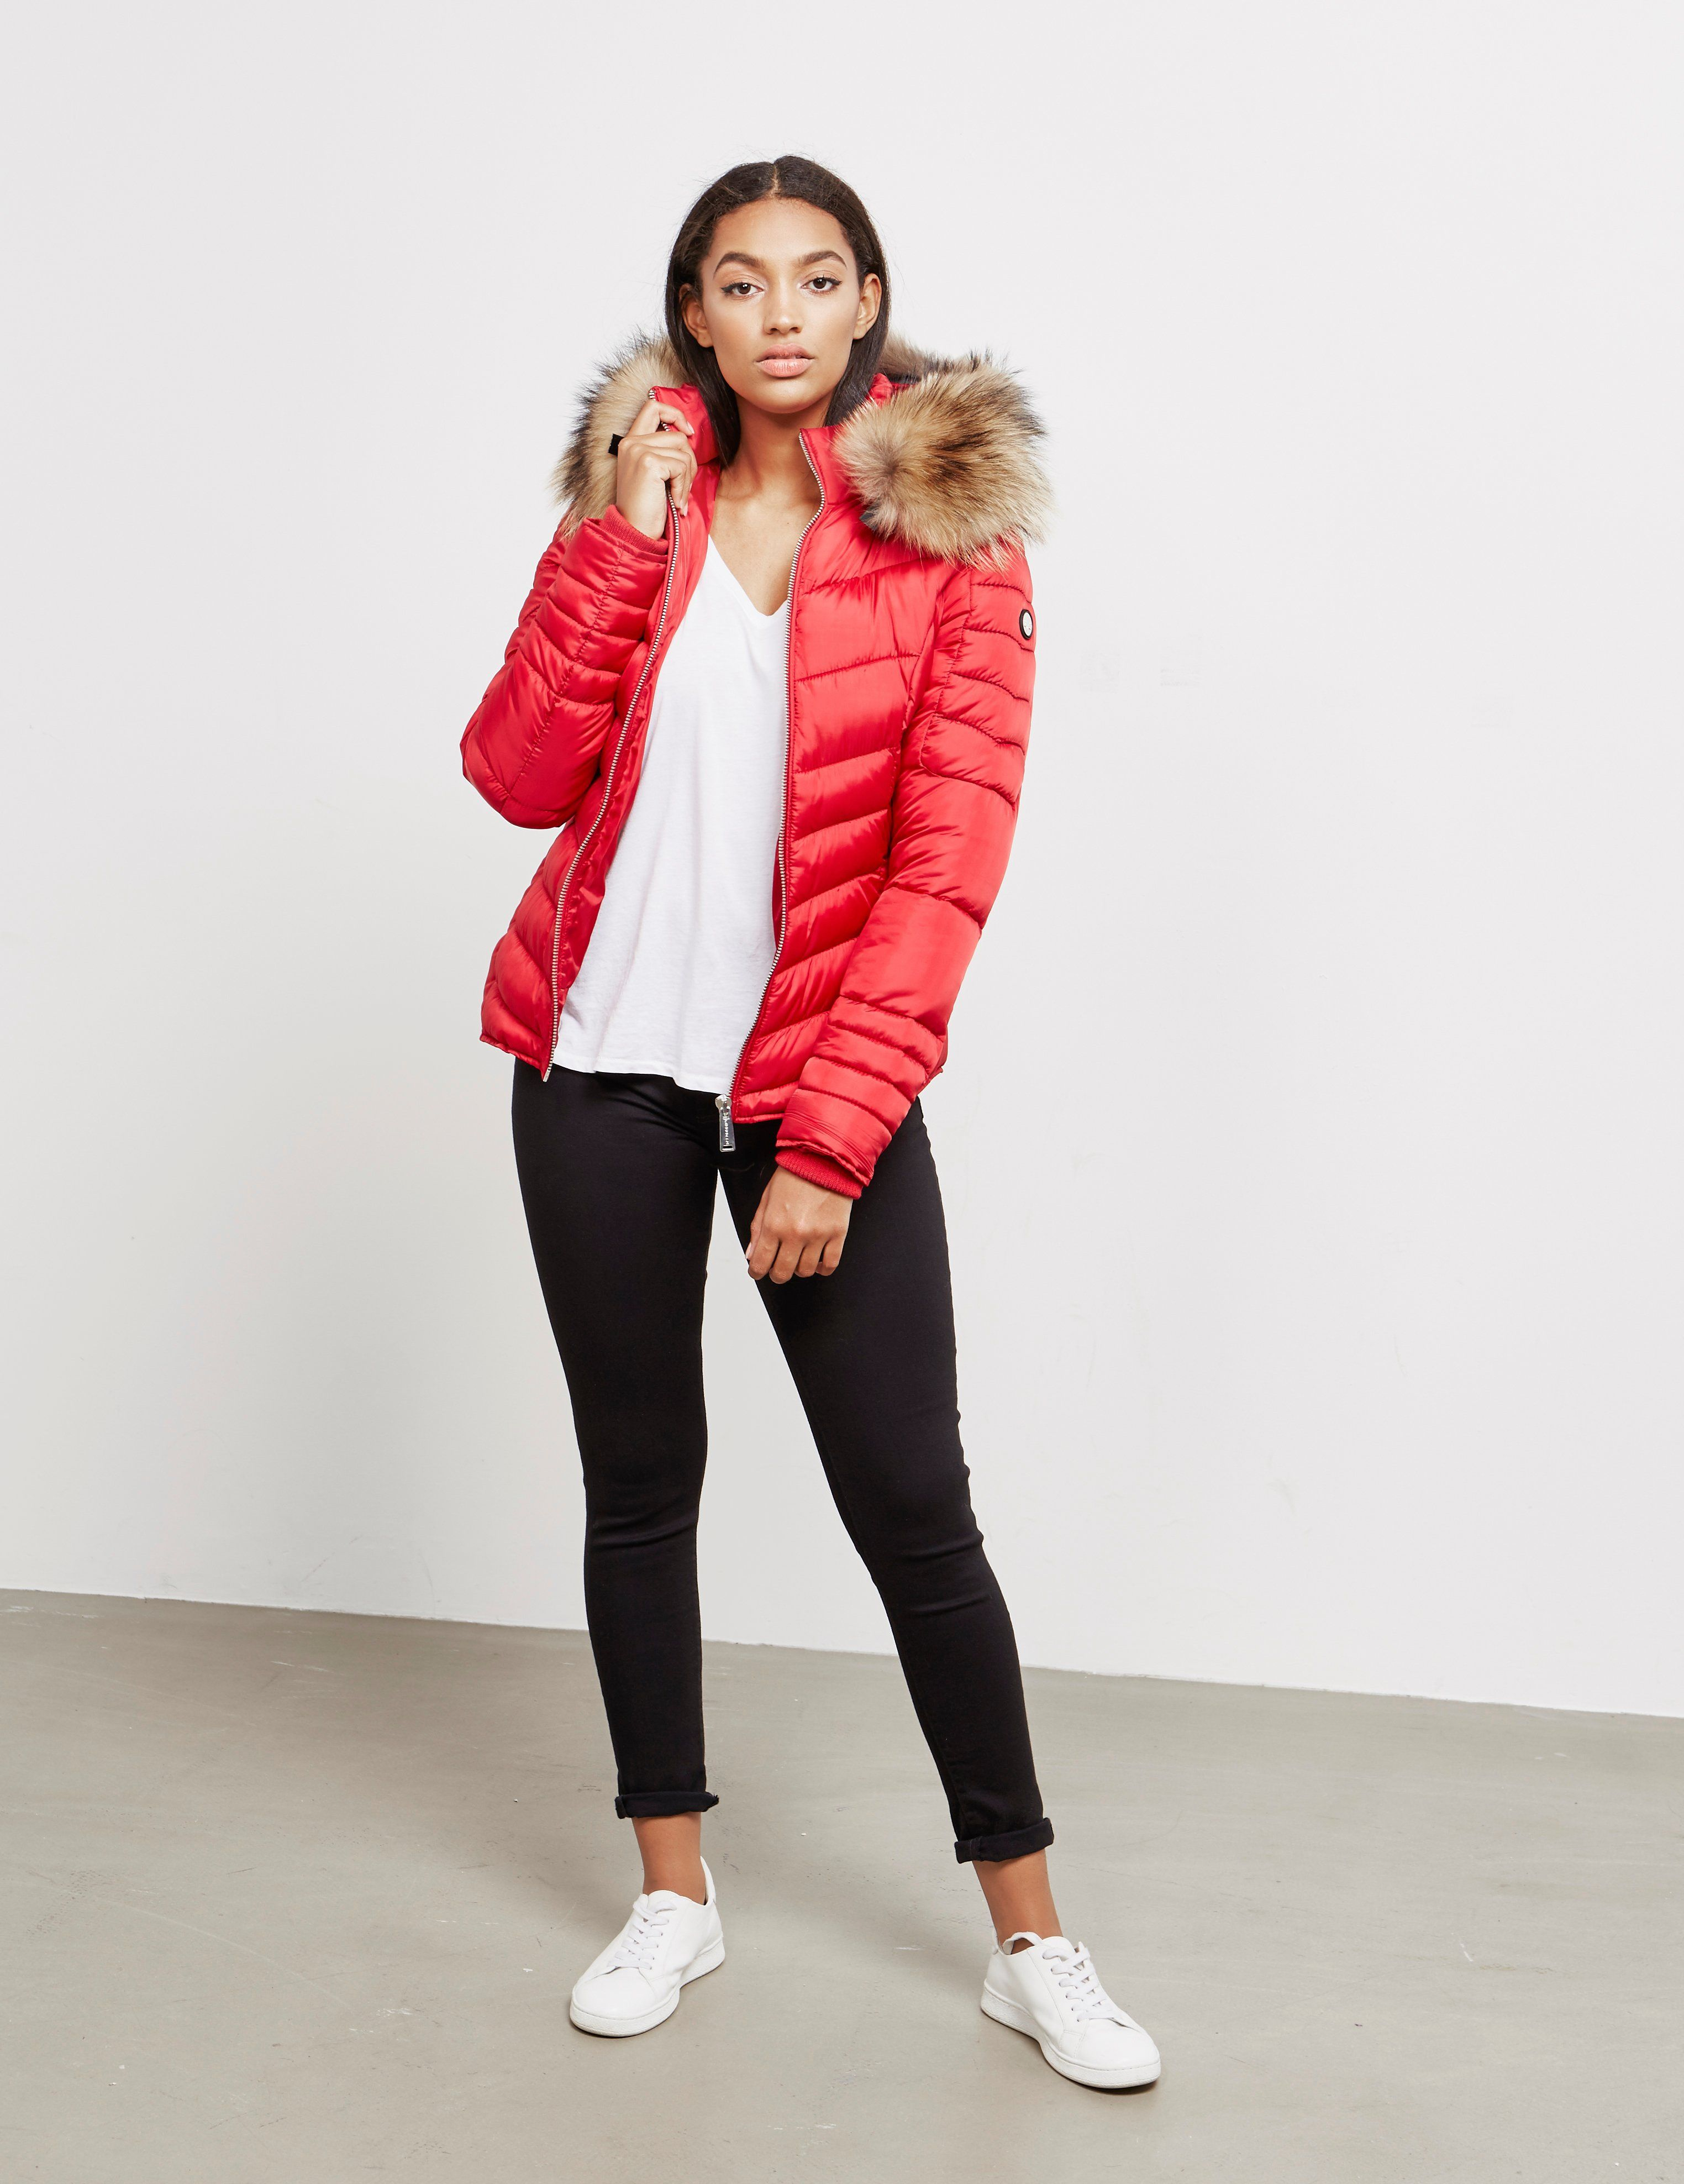 Froccella Chevron Bomber Jacket